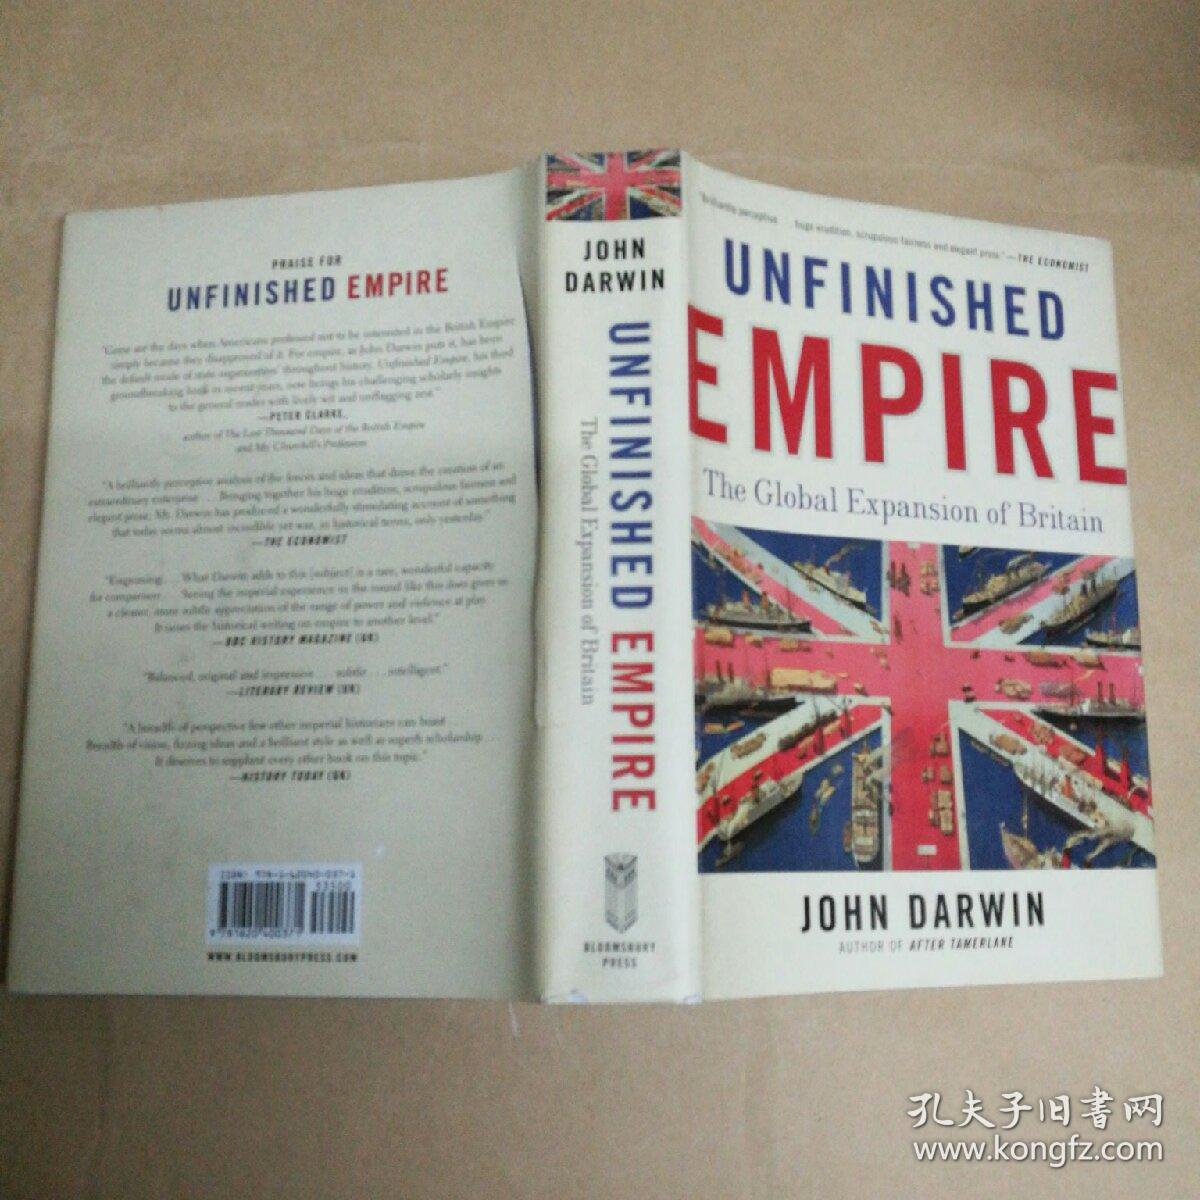 Unfinished Empire: The Global Expansion of Britain(精装毛边)未完成的帝国:英国的全球扩张